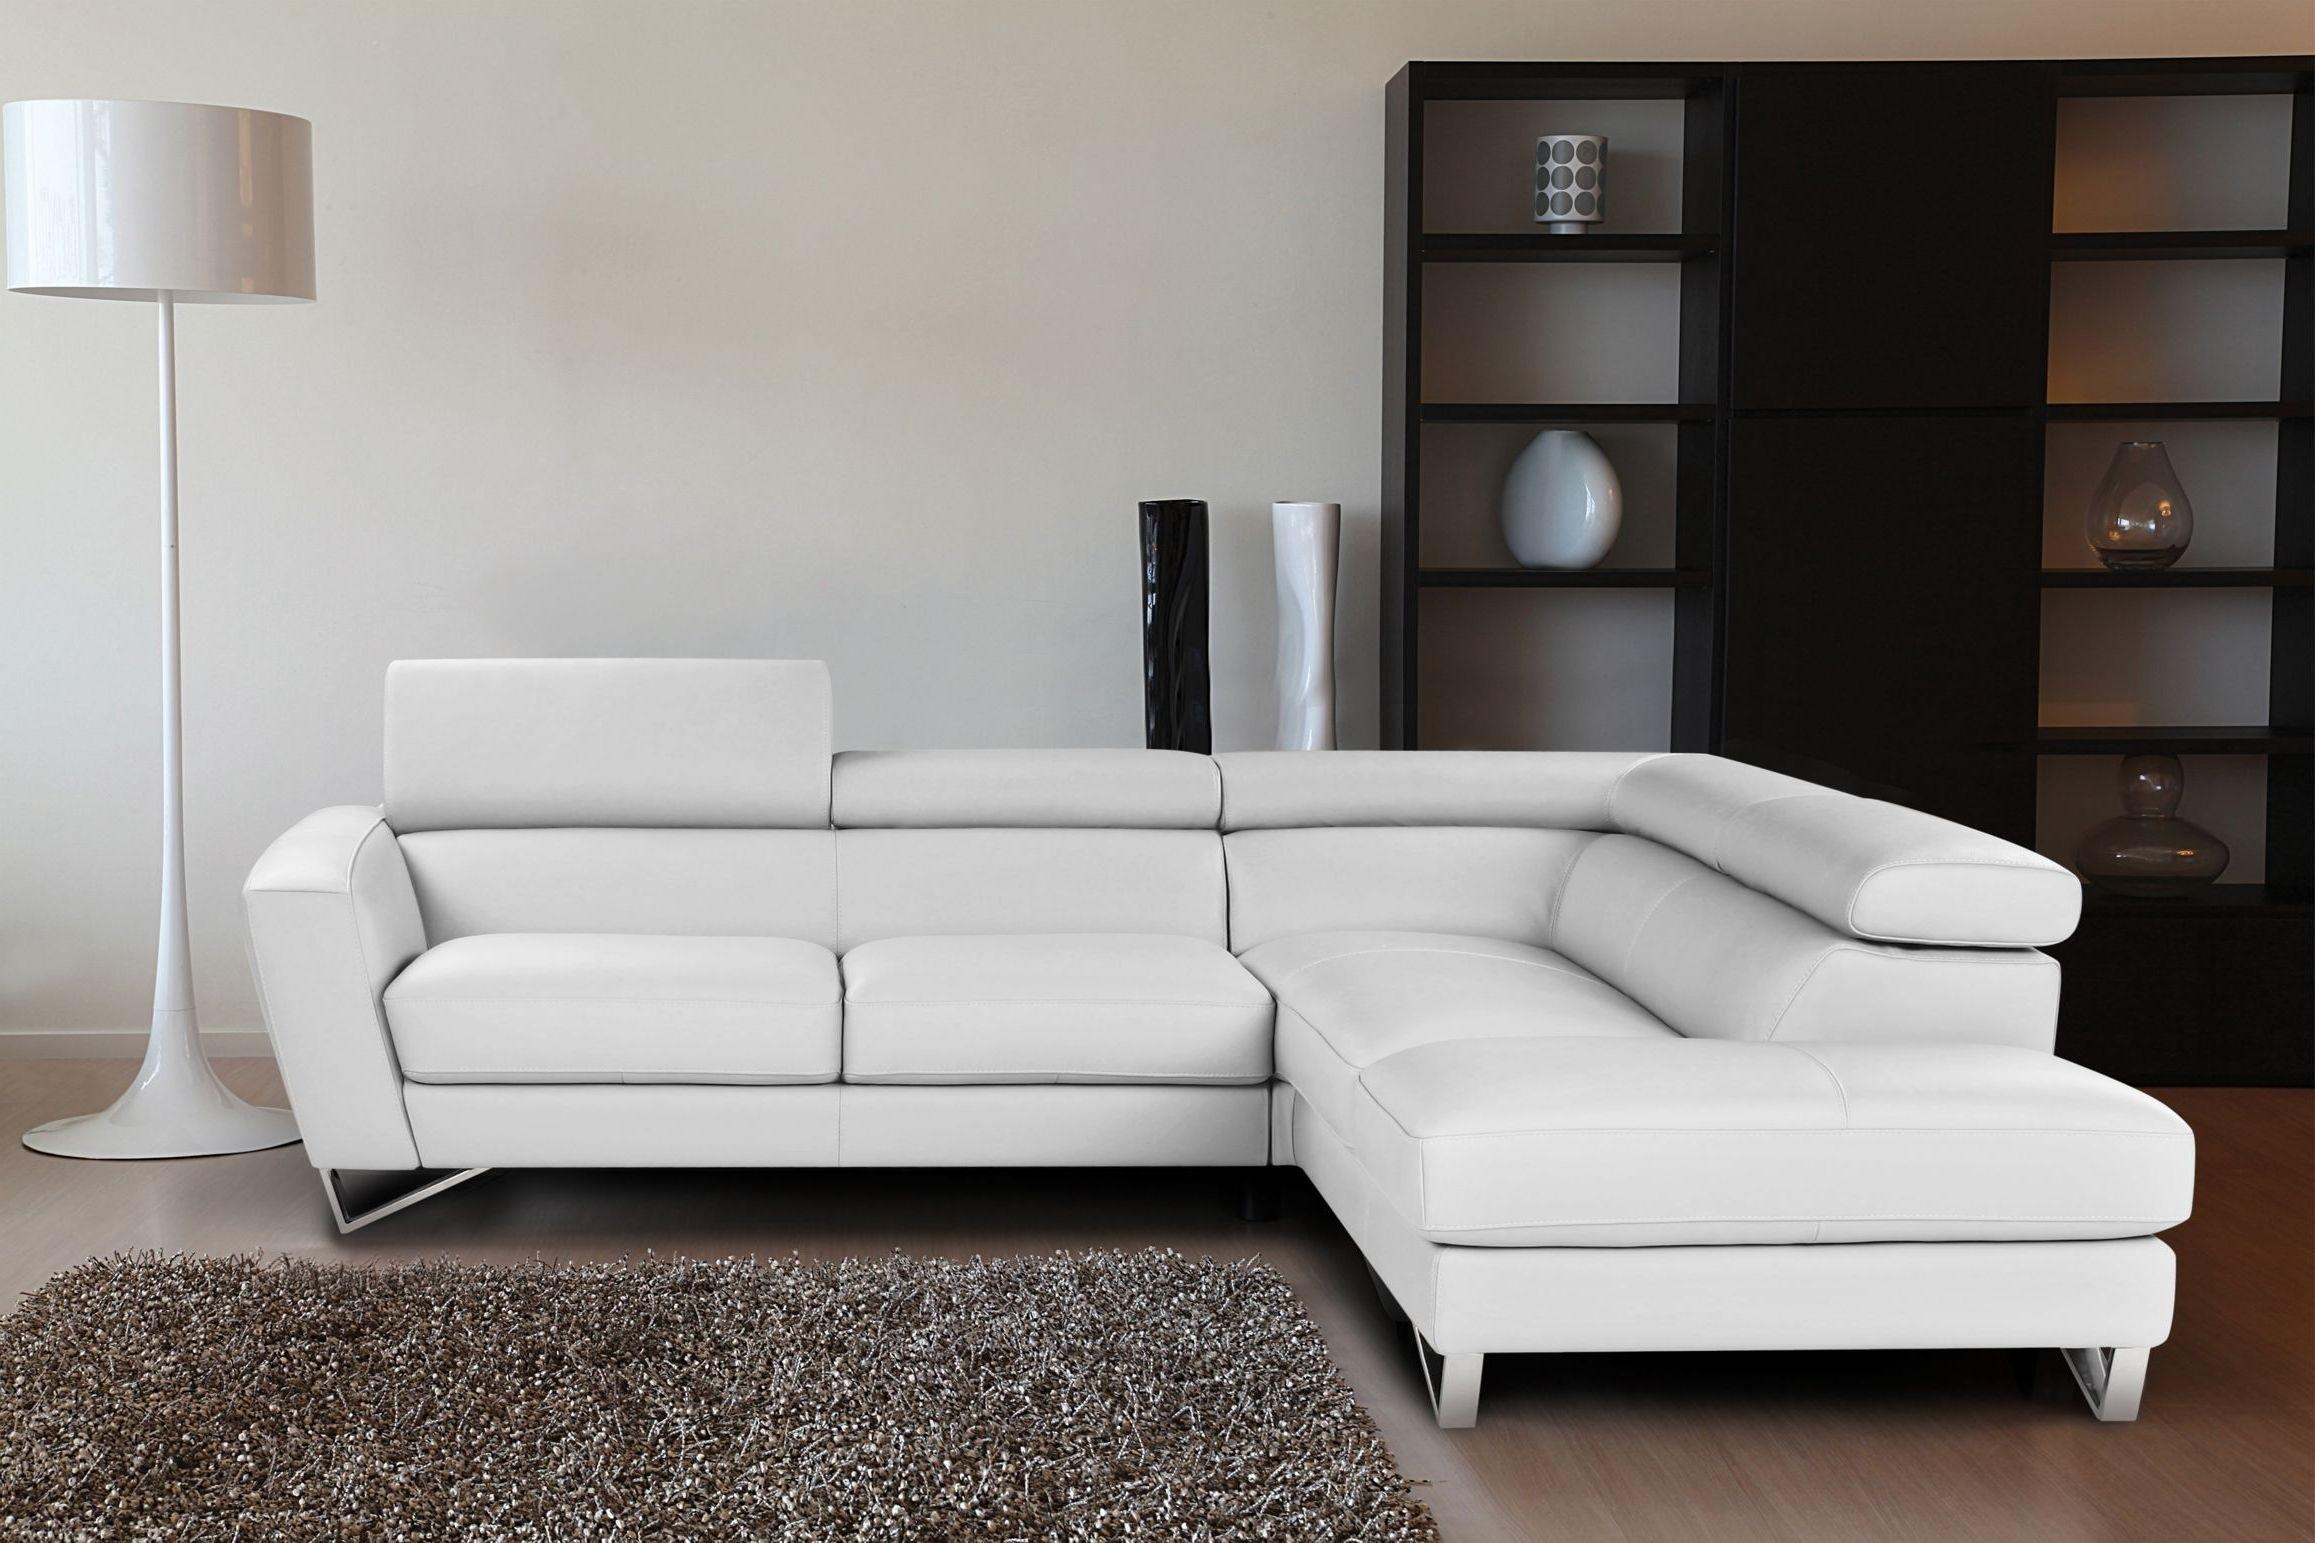 Sofas Center : 782C Beige Rare Italian Sectionalfa Image Intended For Italian Leather Sectionals Contemporary (Image 15 of 20)